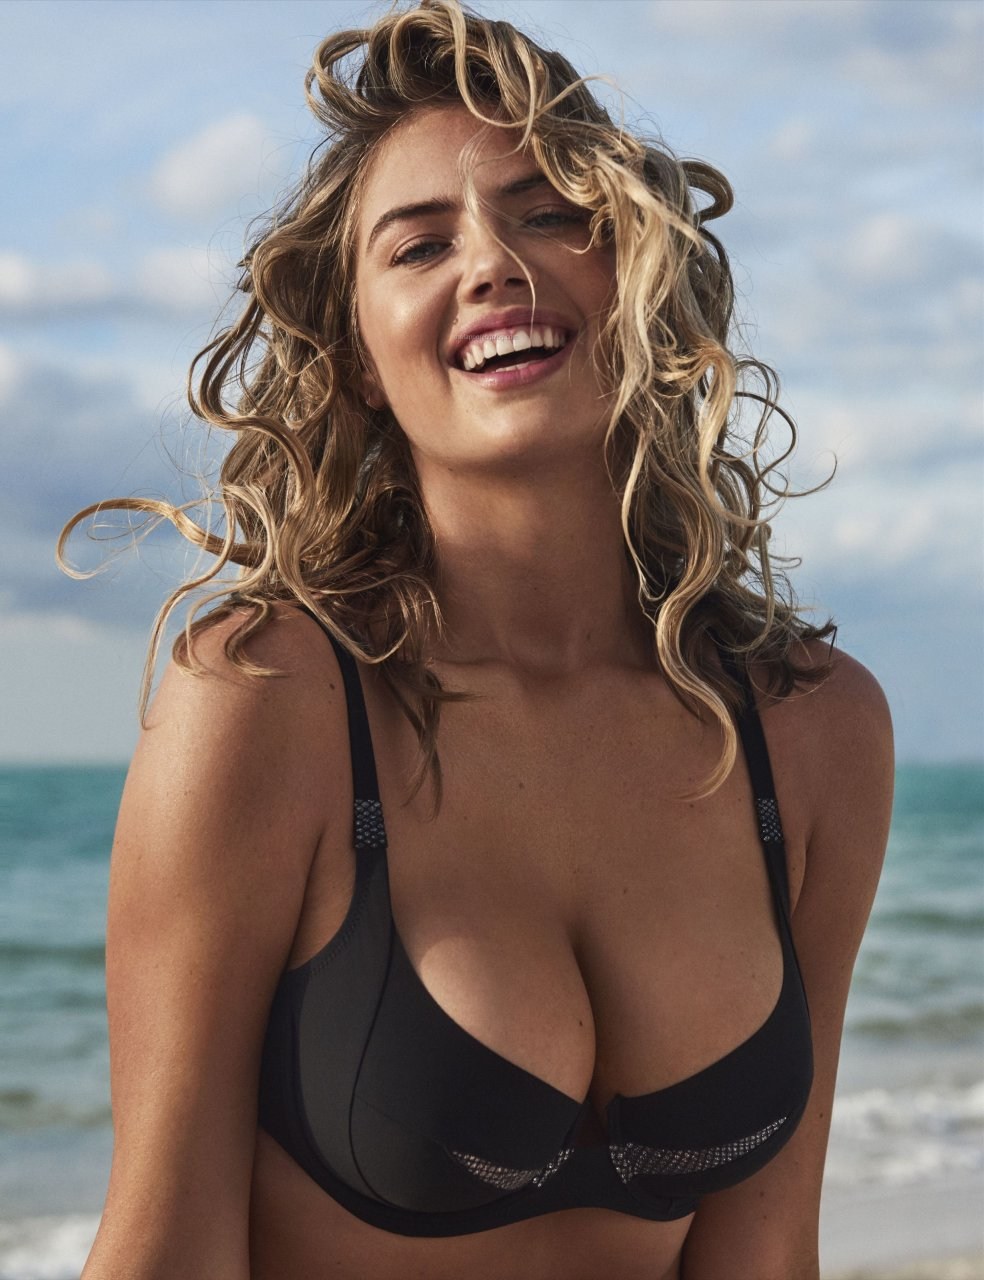 Kate Upton Nude Photos and Videos  TheFappening